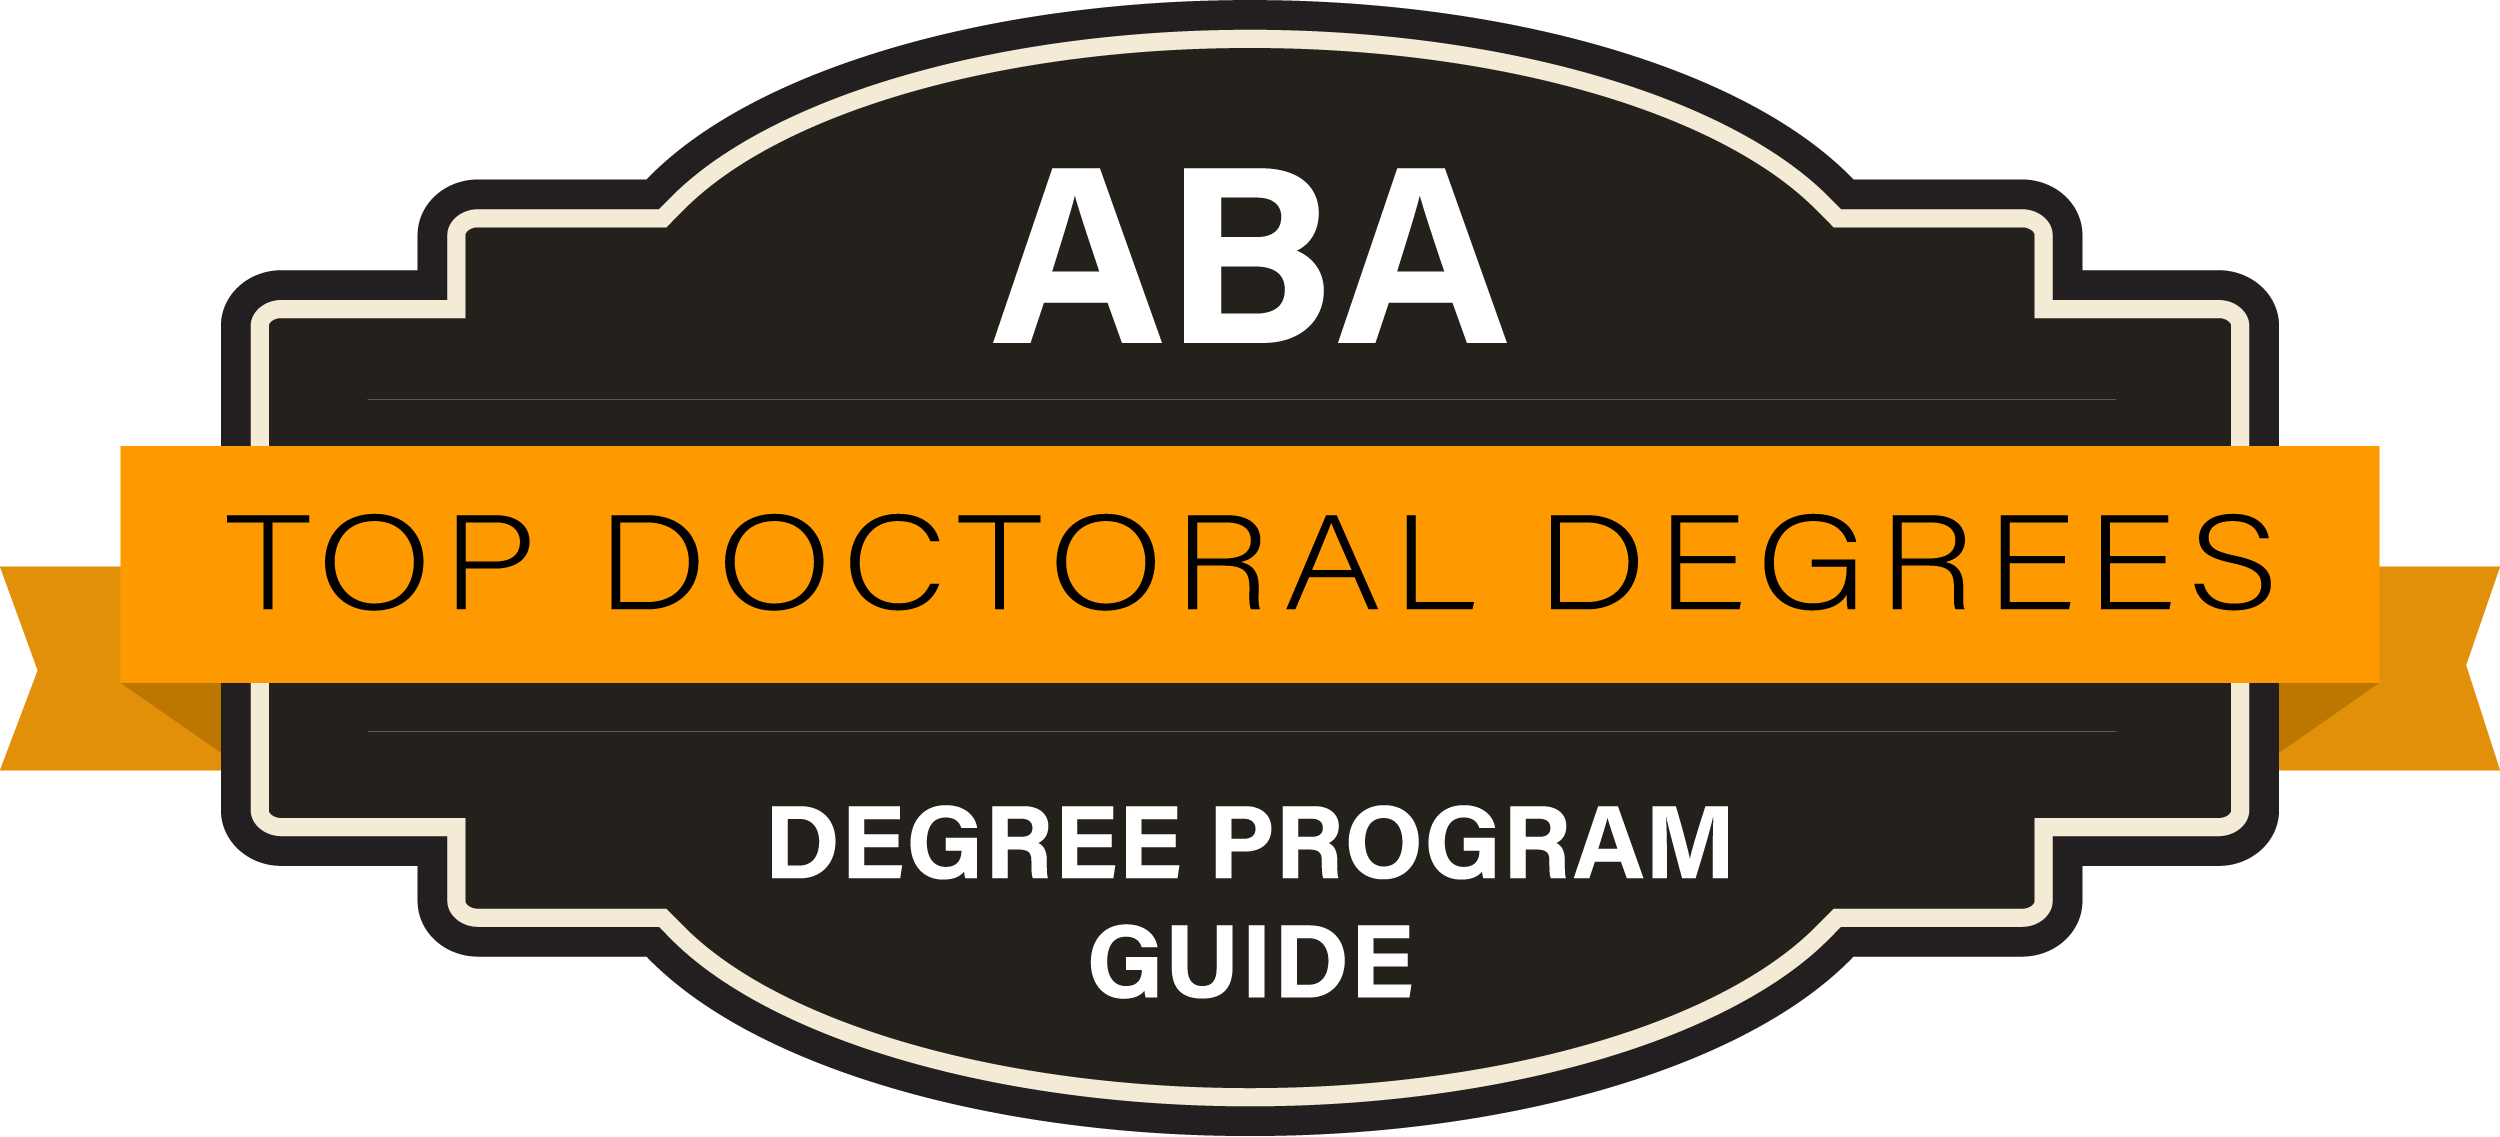 10 Best ABA PhD Degree Programs 2018 | ABA Degree Program Guide